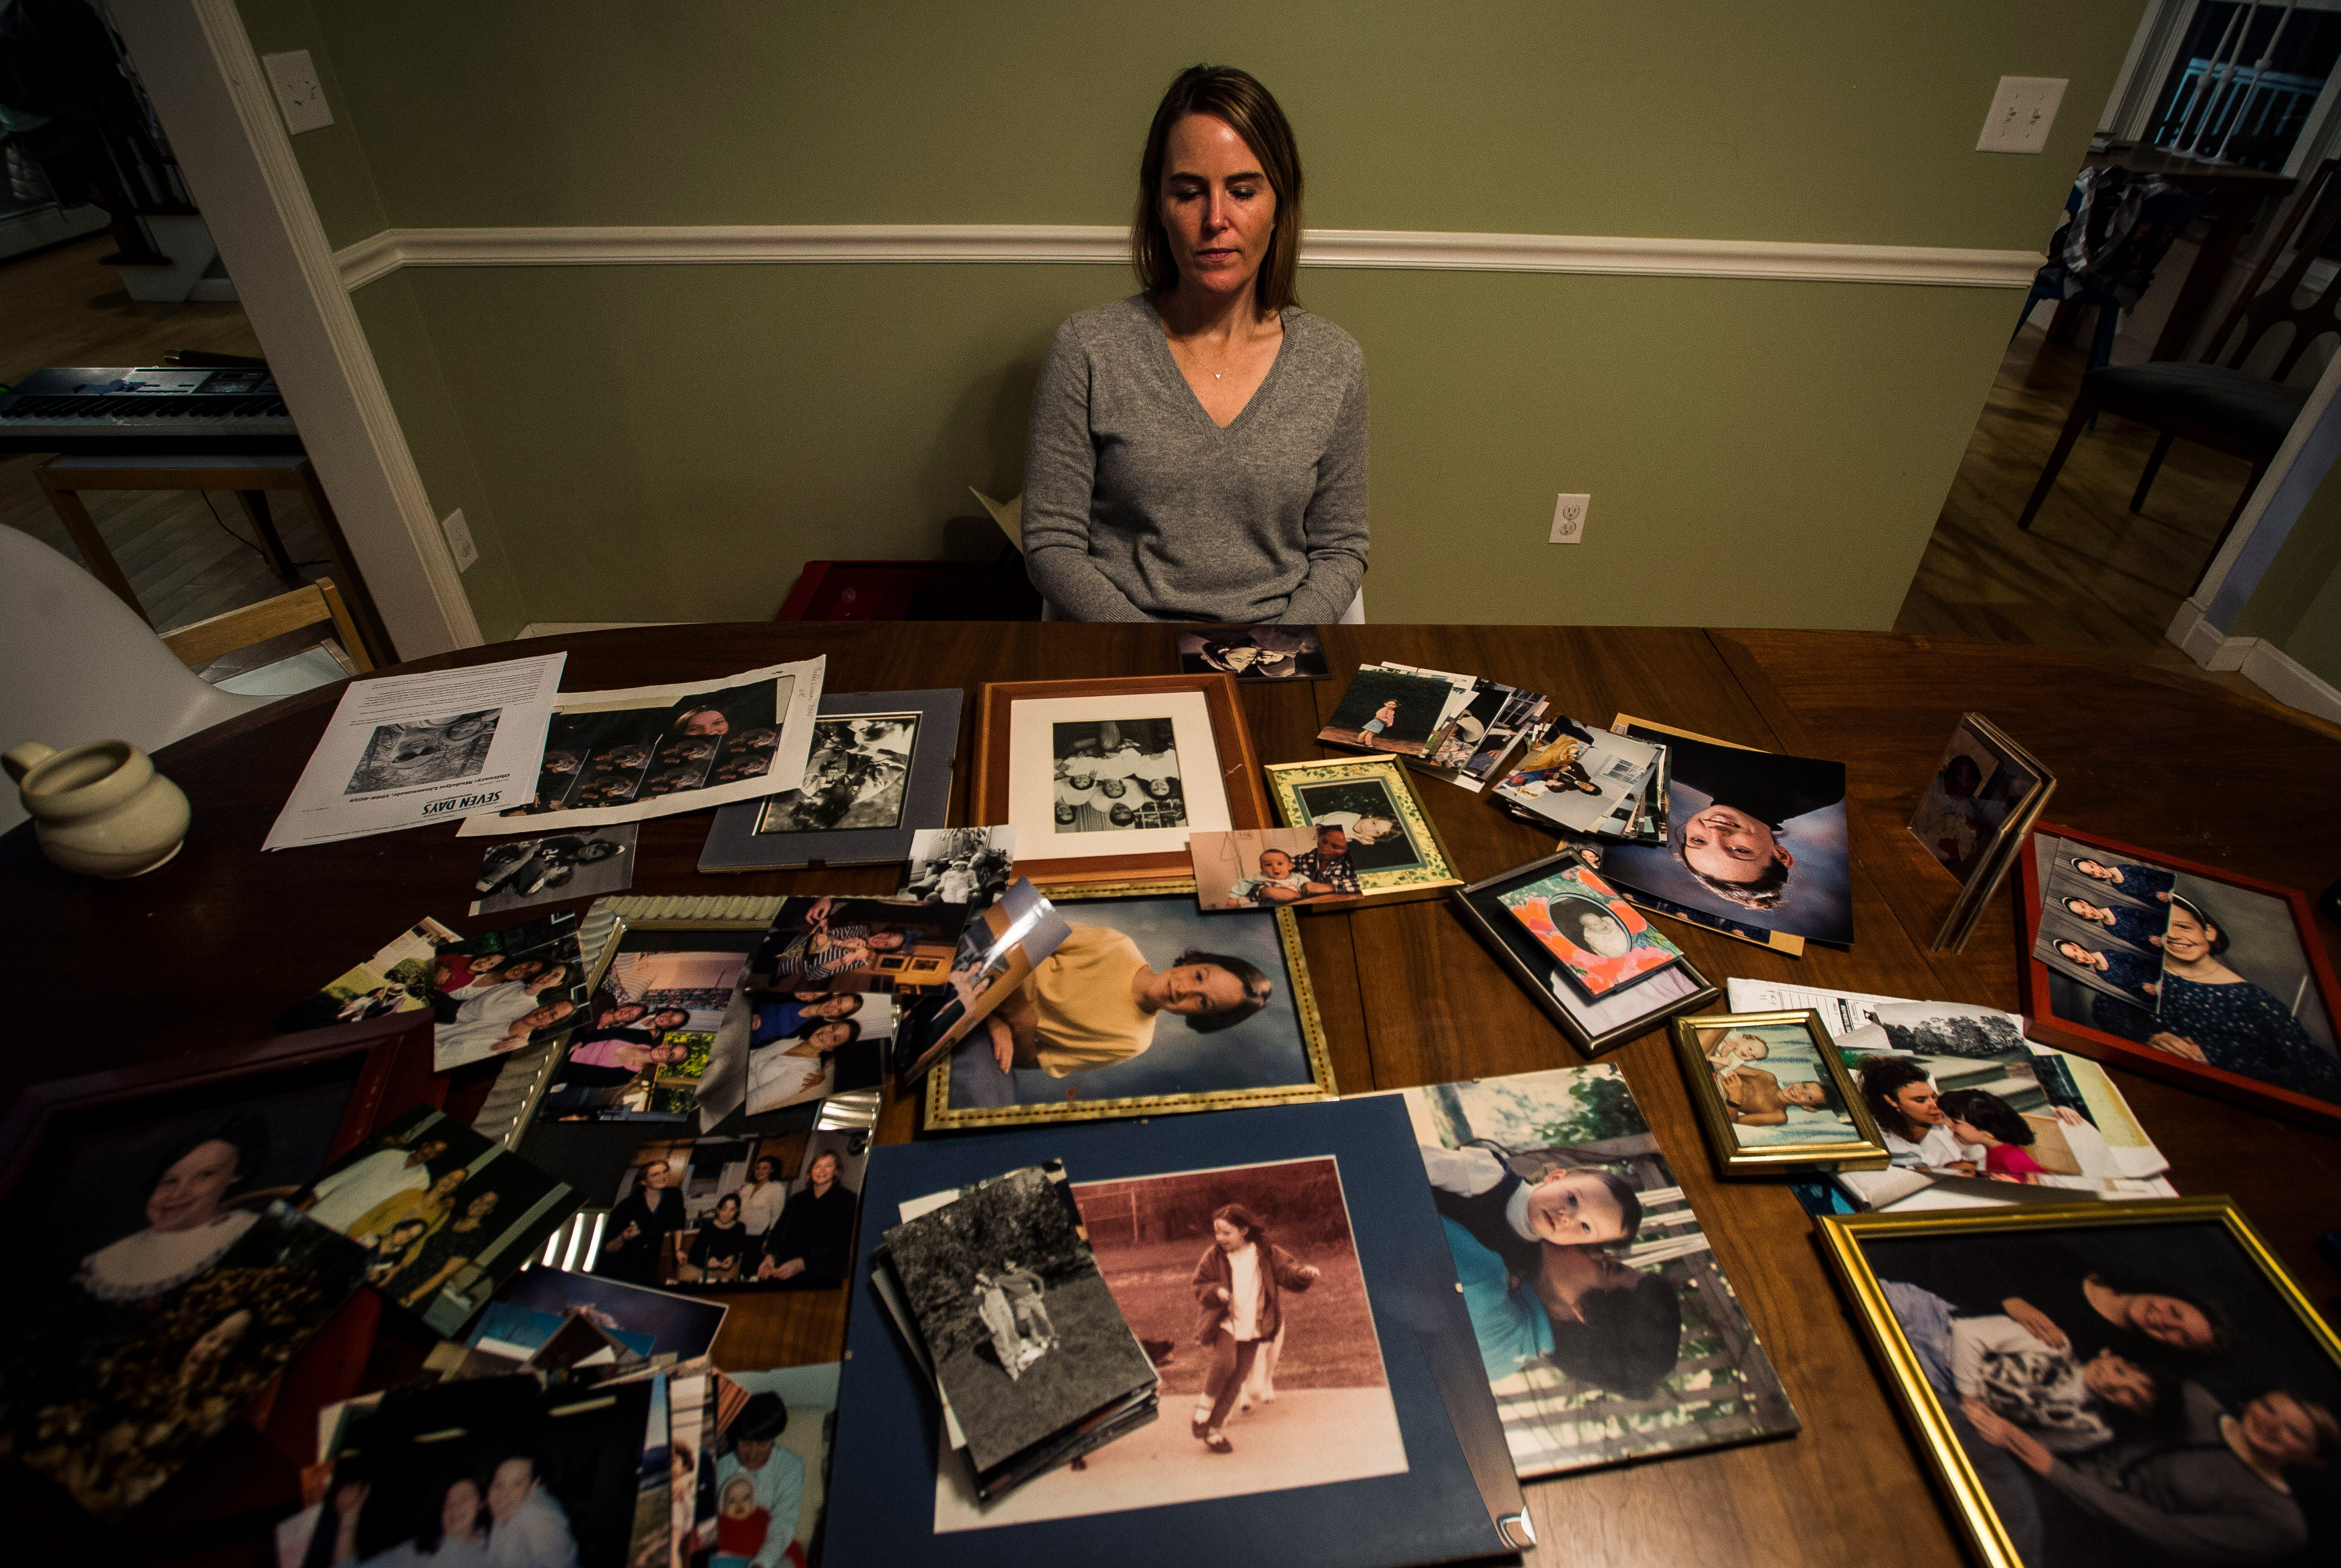 Vermont family speaks about reaction to obituary detailing struggle with opioid addiction | Burlington Free Press